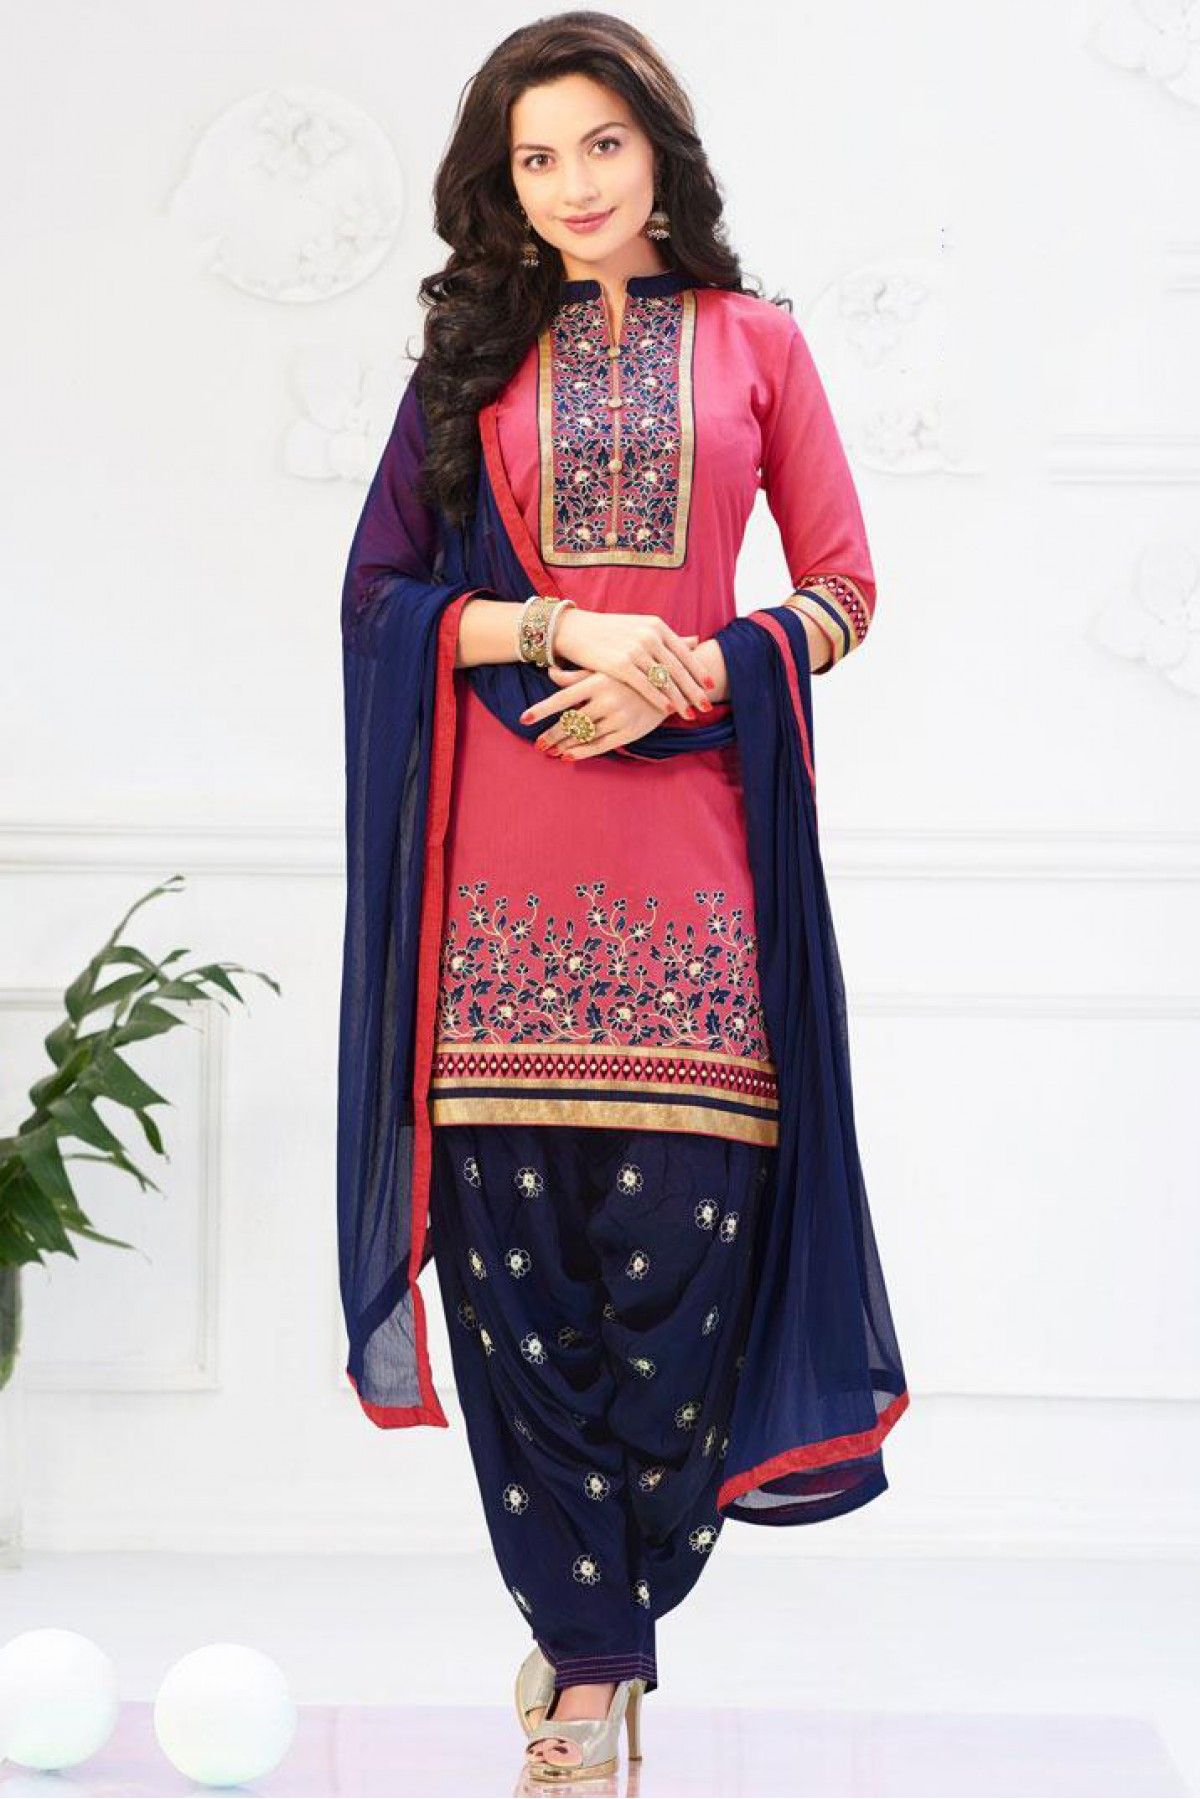 baf32faf05 Blue and Pink Colour Banarasi Chanderi Fabric Designer Unstitched Patiala Salwar  Kameez Comes With Matching Dupatta and Bottom Fabric.